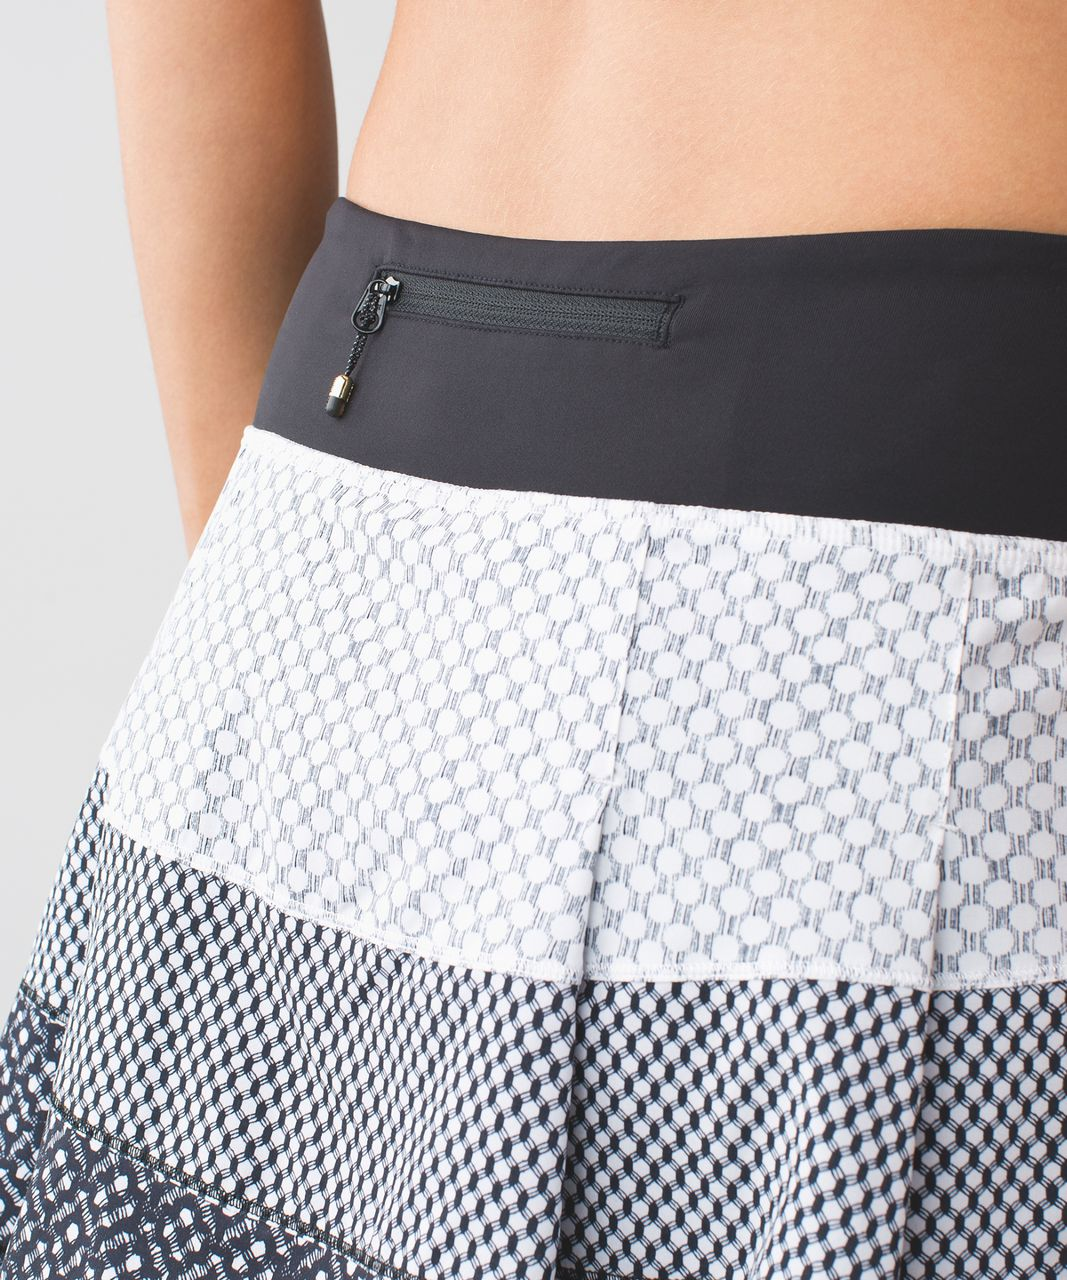 Lululemon Pace Rival Skirt II (Regular) *4-way Stretch - Dottie Eyelet White Black / Mish Mesh White Black / Millie Mesh White Black